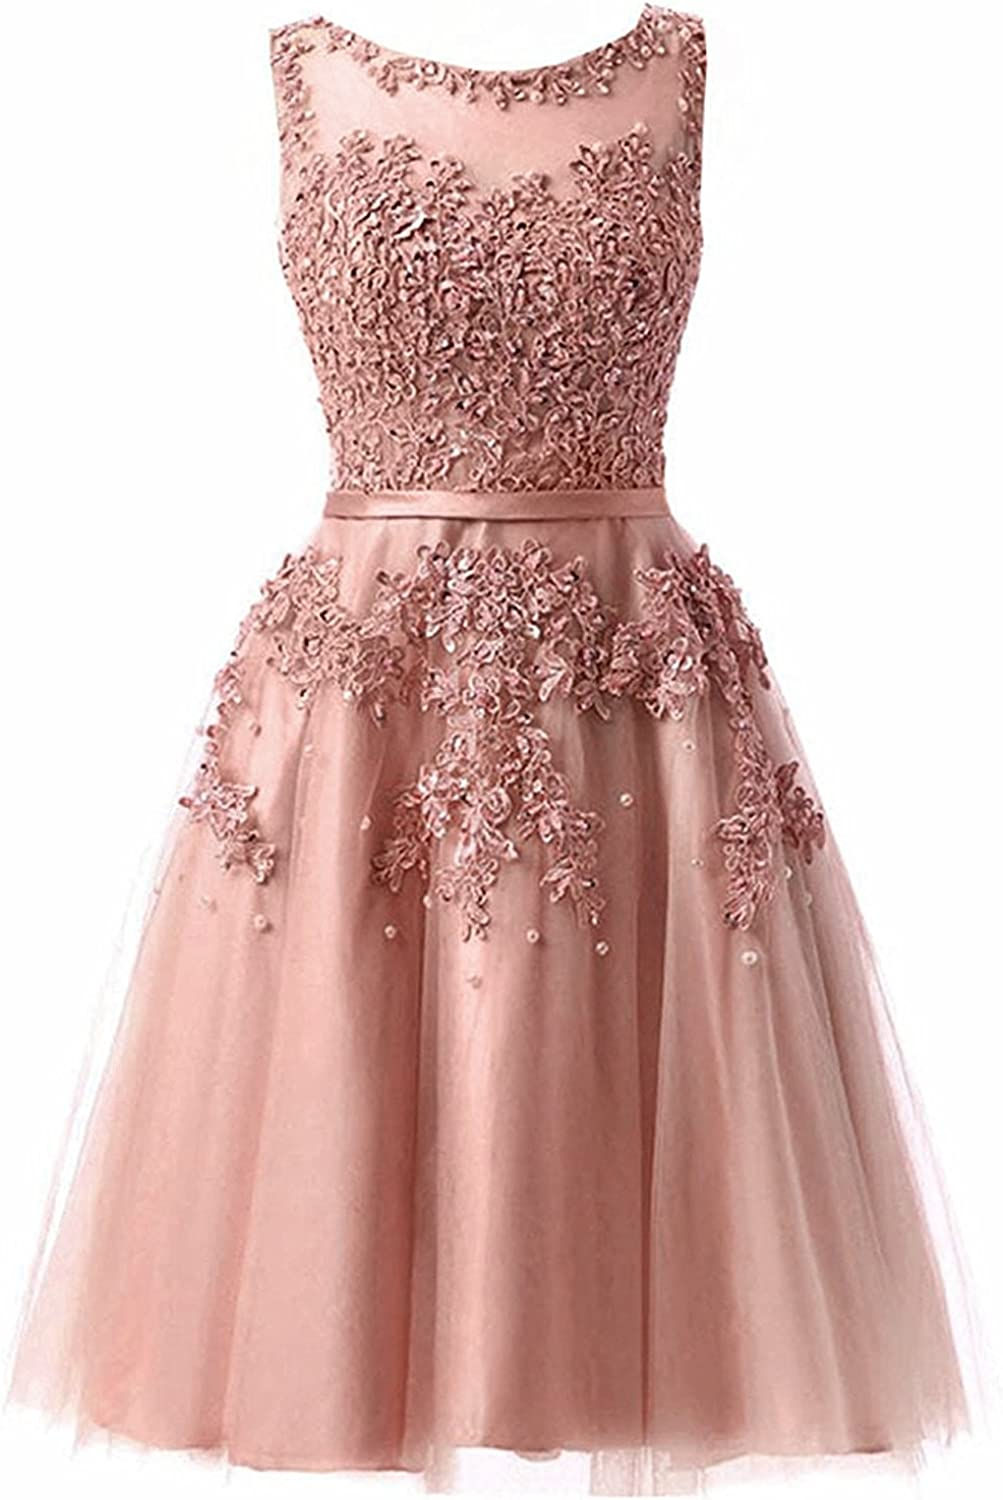 Ever Girl Women's Knee Length Tulle Lace Appliques Hollow Homecoming Dress